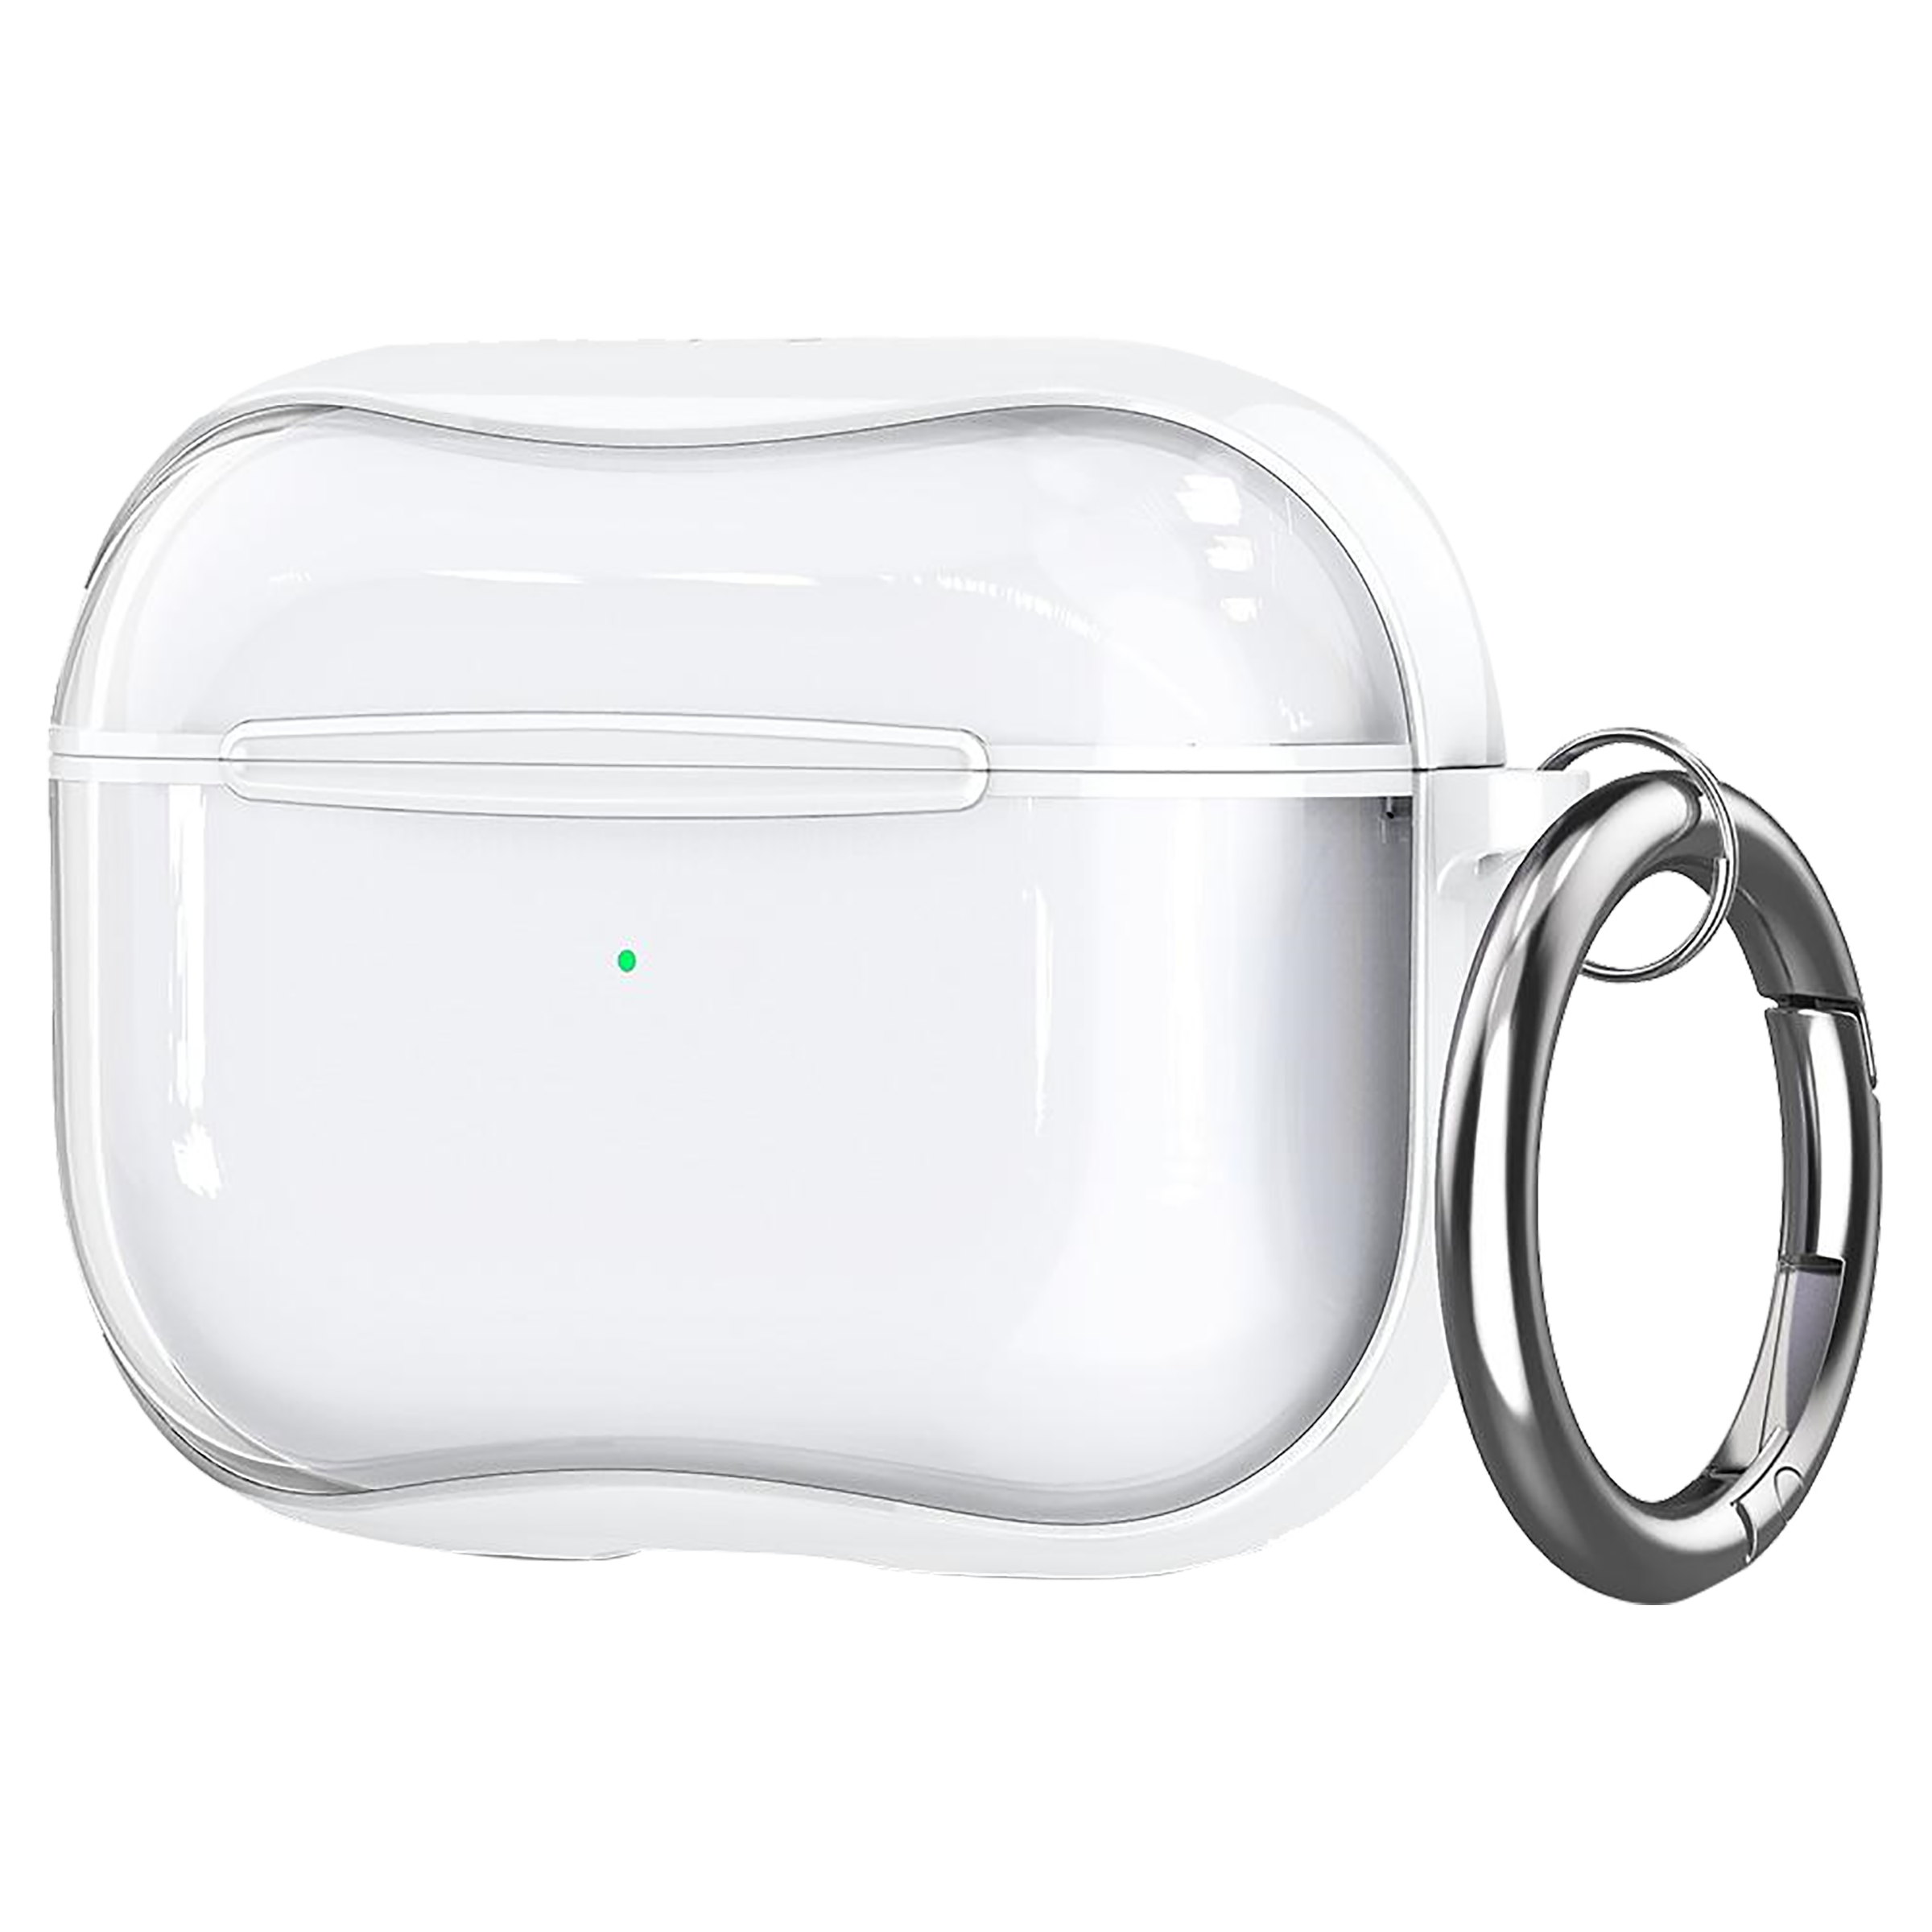 Spigen Ultra Hybrid TPU & PC Full Cover Case For AirPods Pro (Fully Compatible With Wireless Charging, ASD01246, Jet White)_1